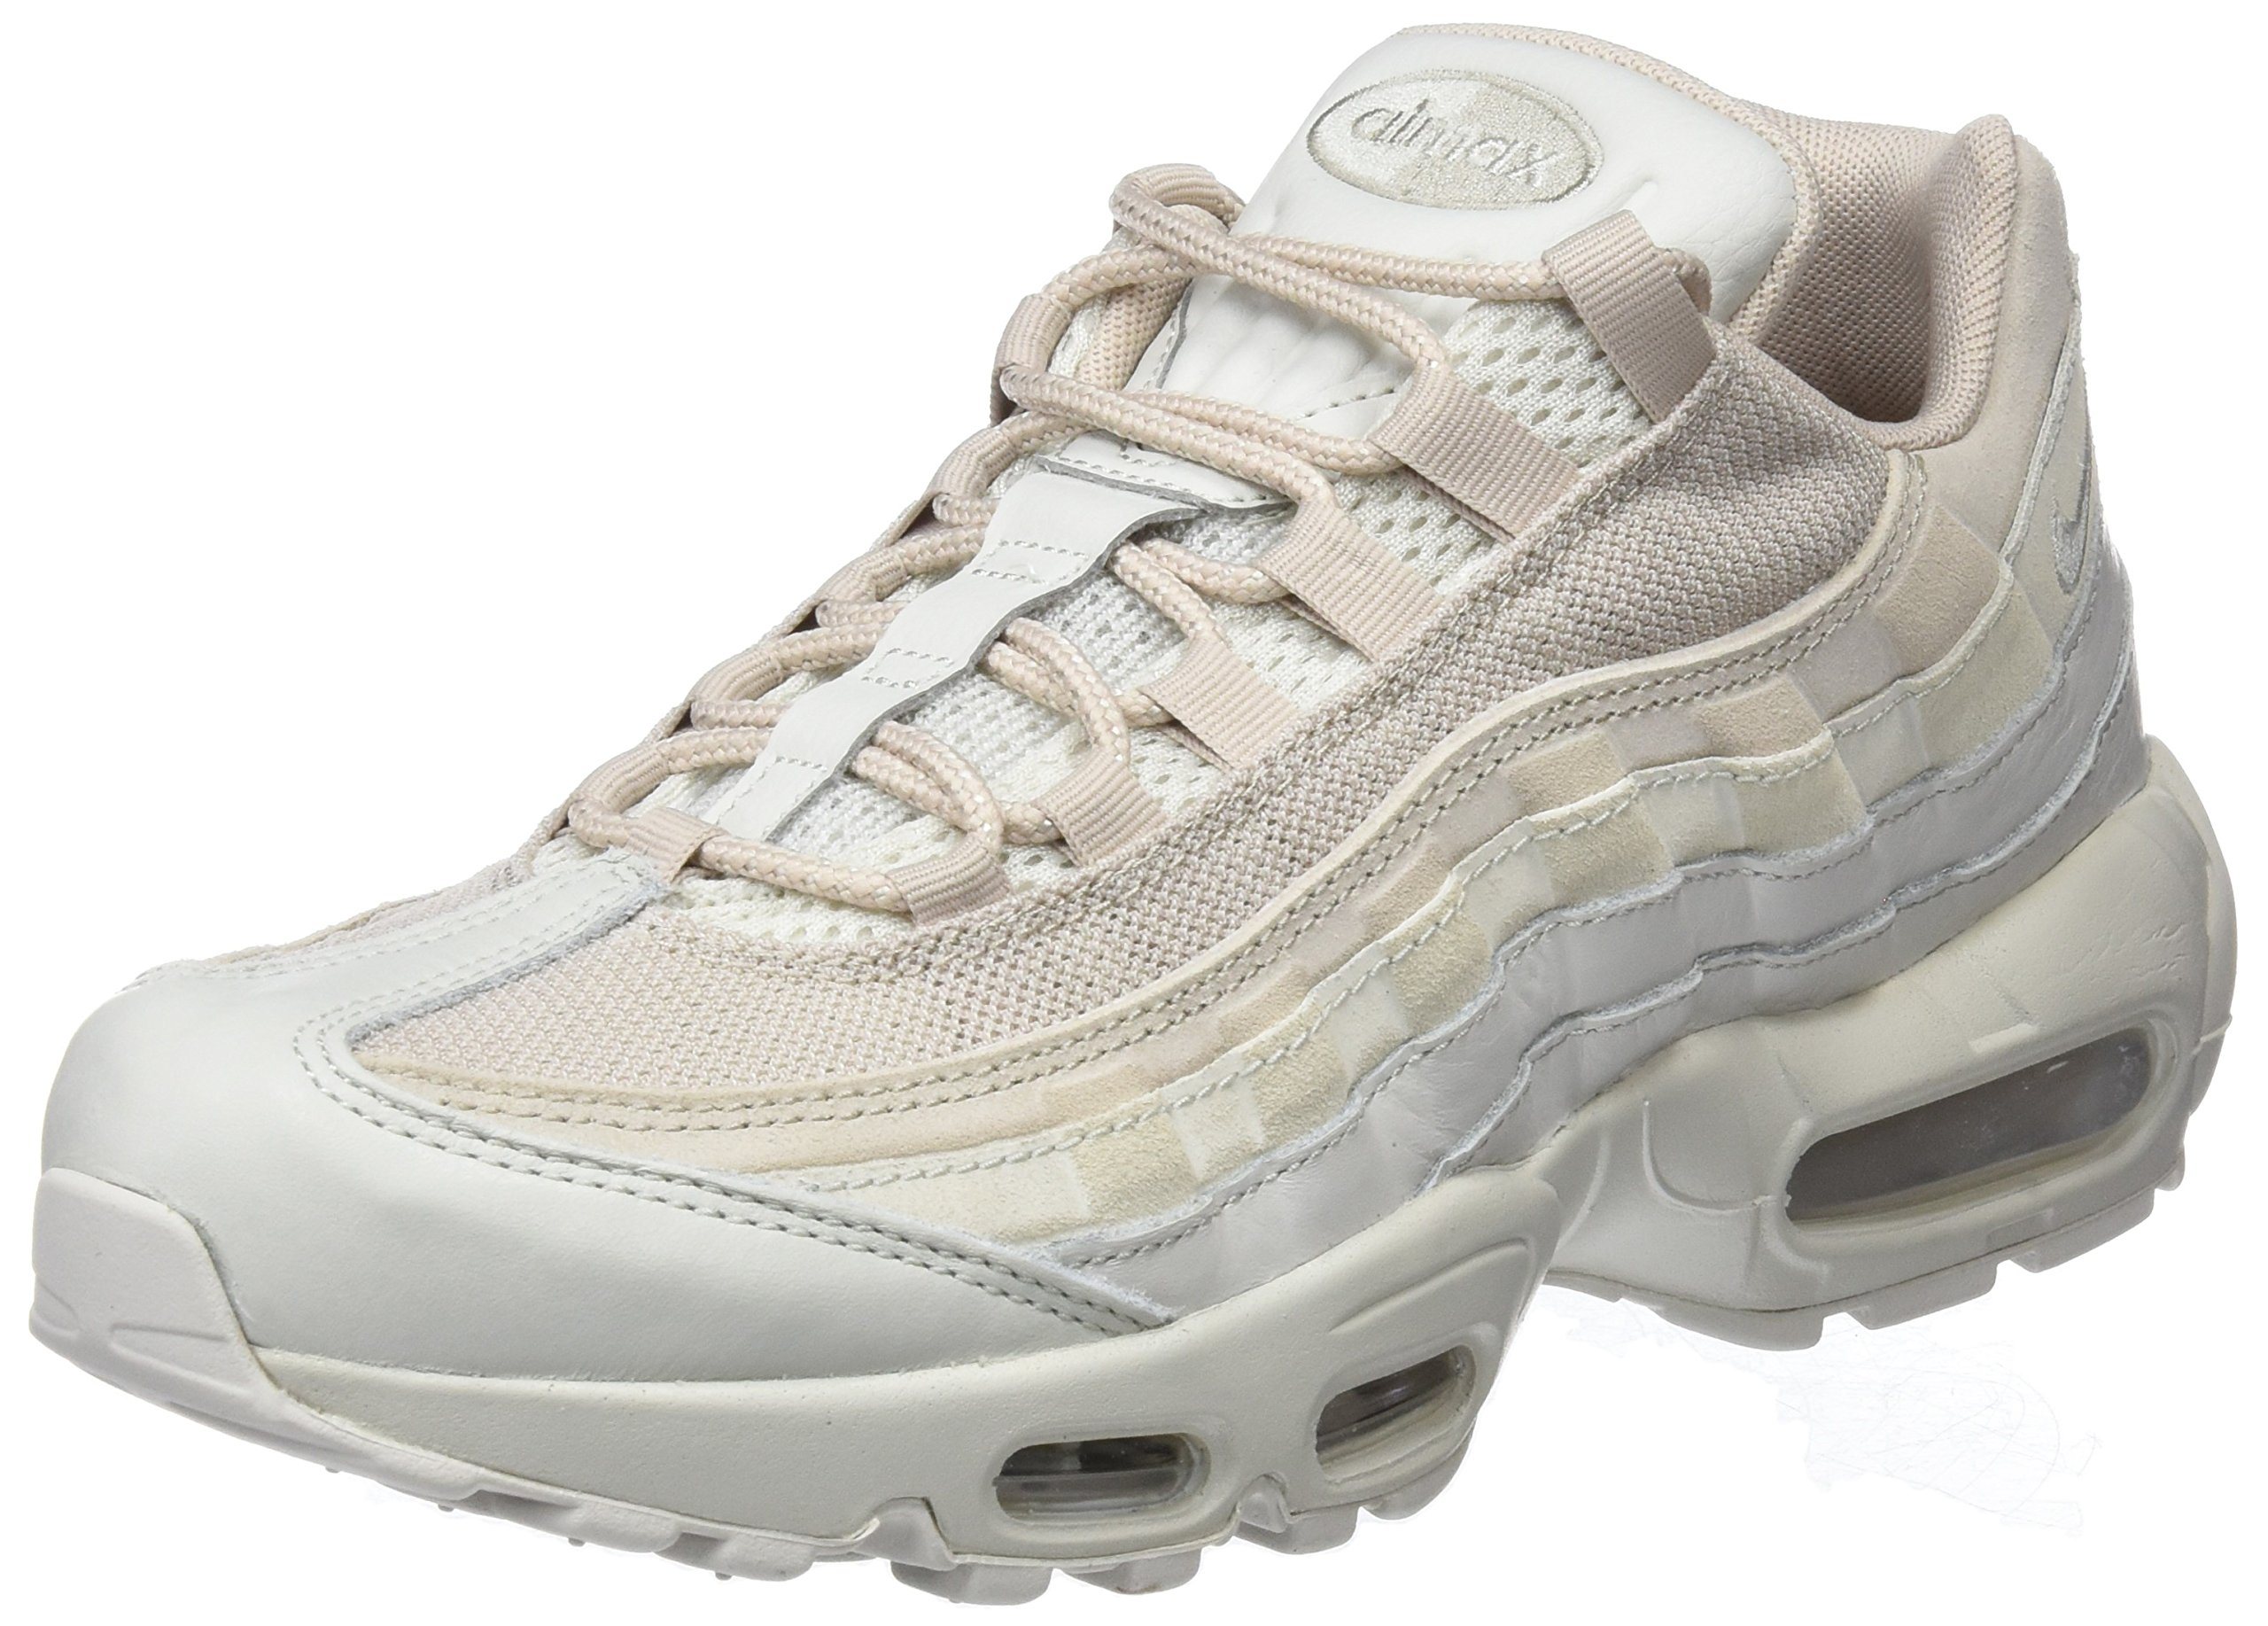 c804f6f08c185 Galleon - Nike Men's Air Max 95 Premium Running Shoe (8 D(M) US, Light  Bone/Light Bone-String)